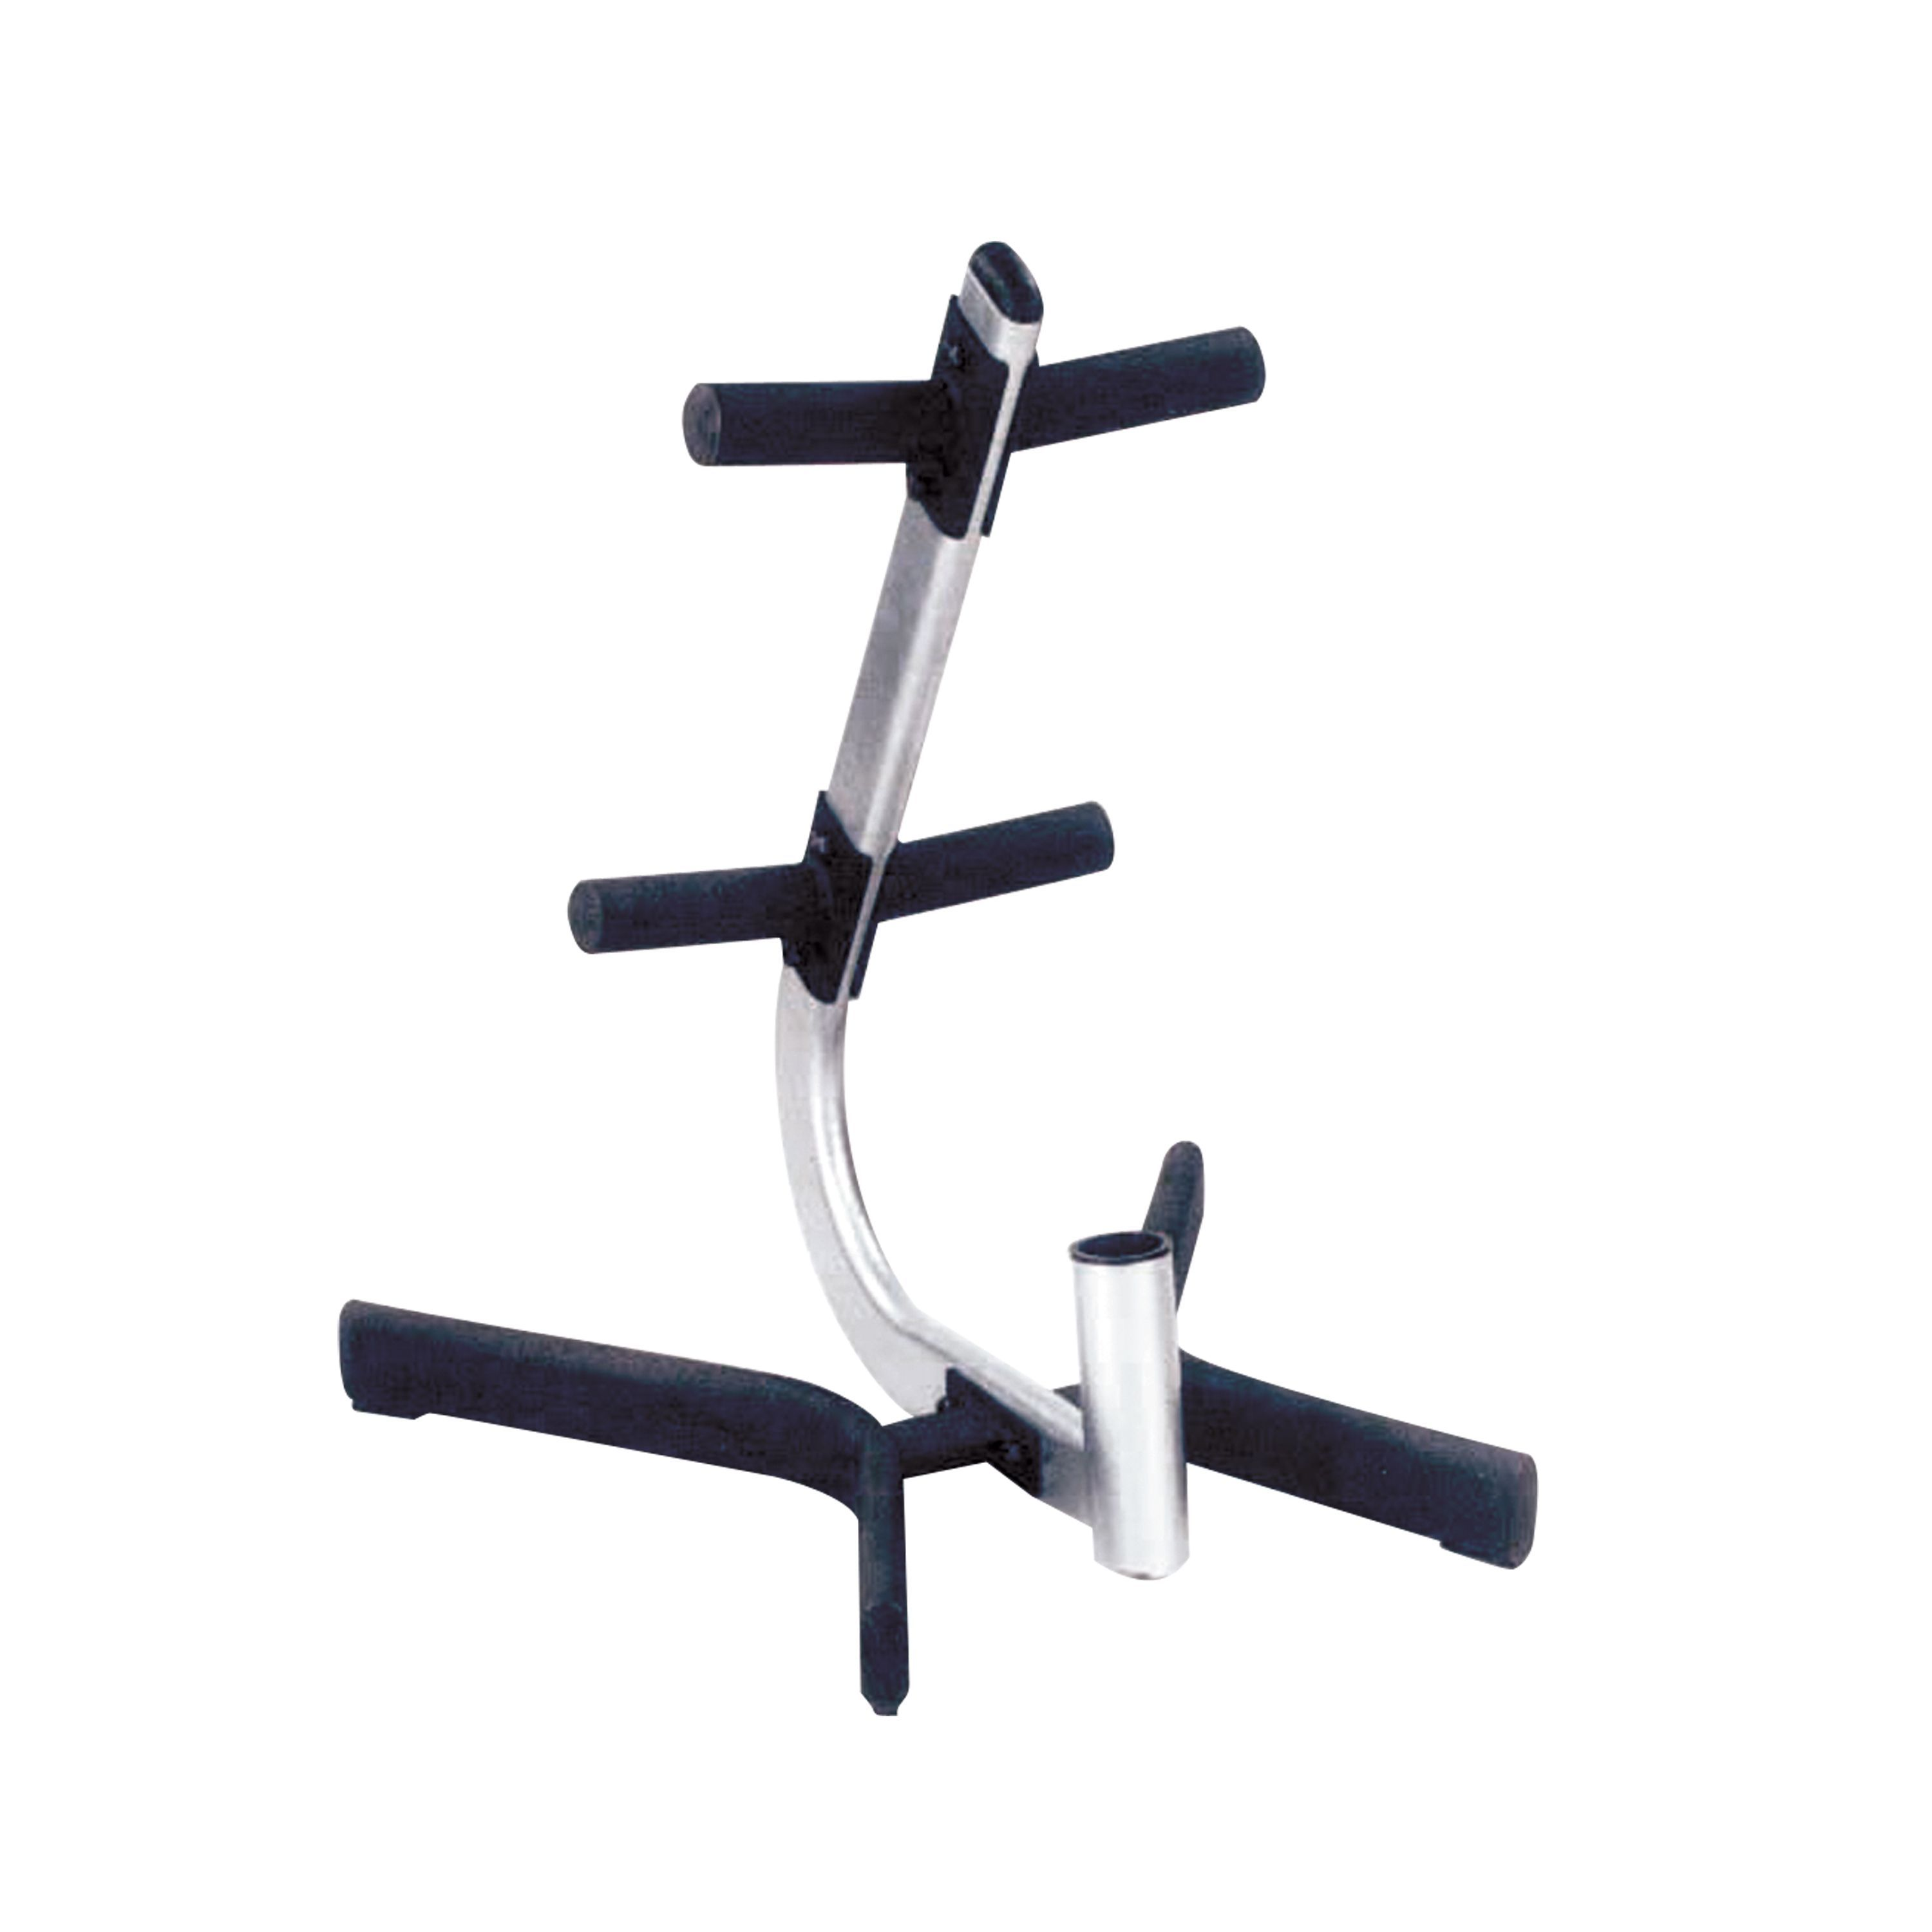 CAP Barbell 2inch Plate and Bar Storage Rack (CAP Barbell